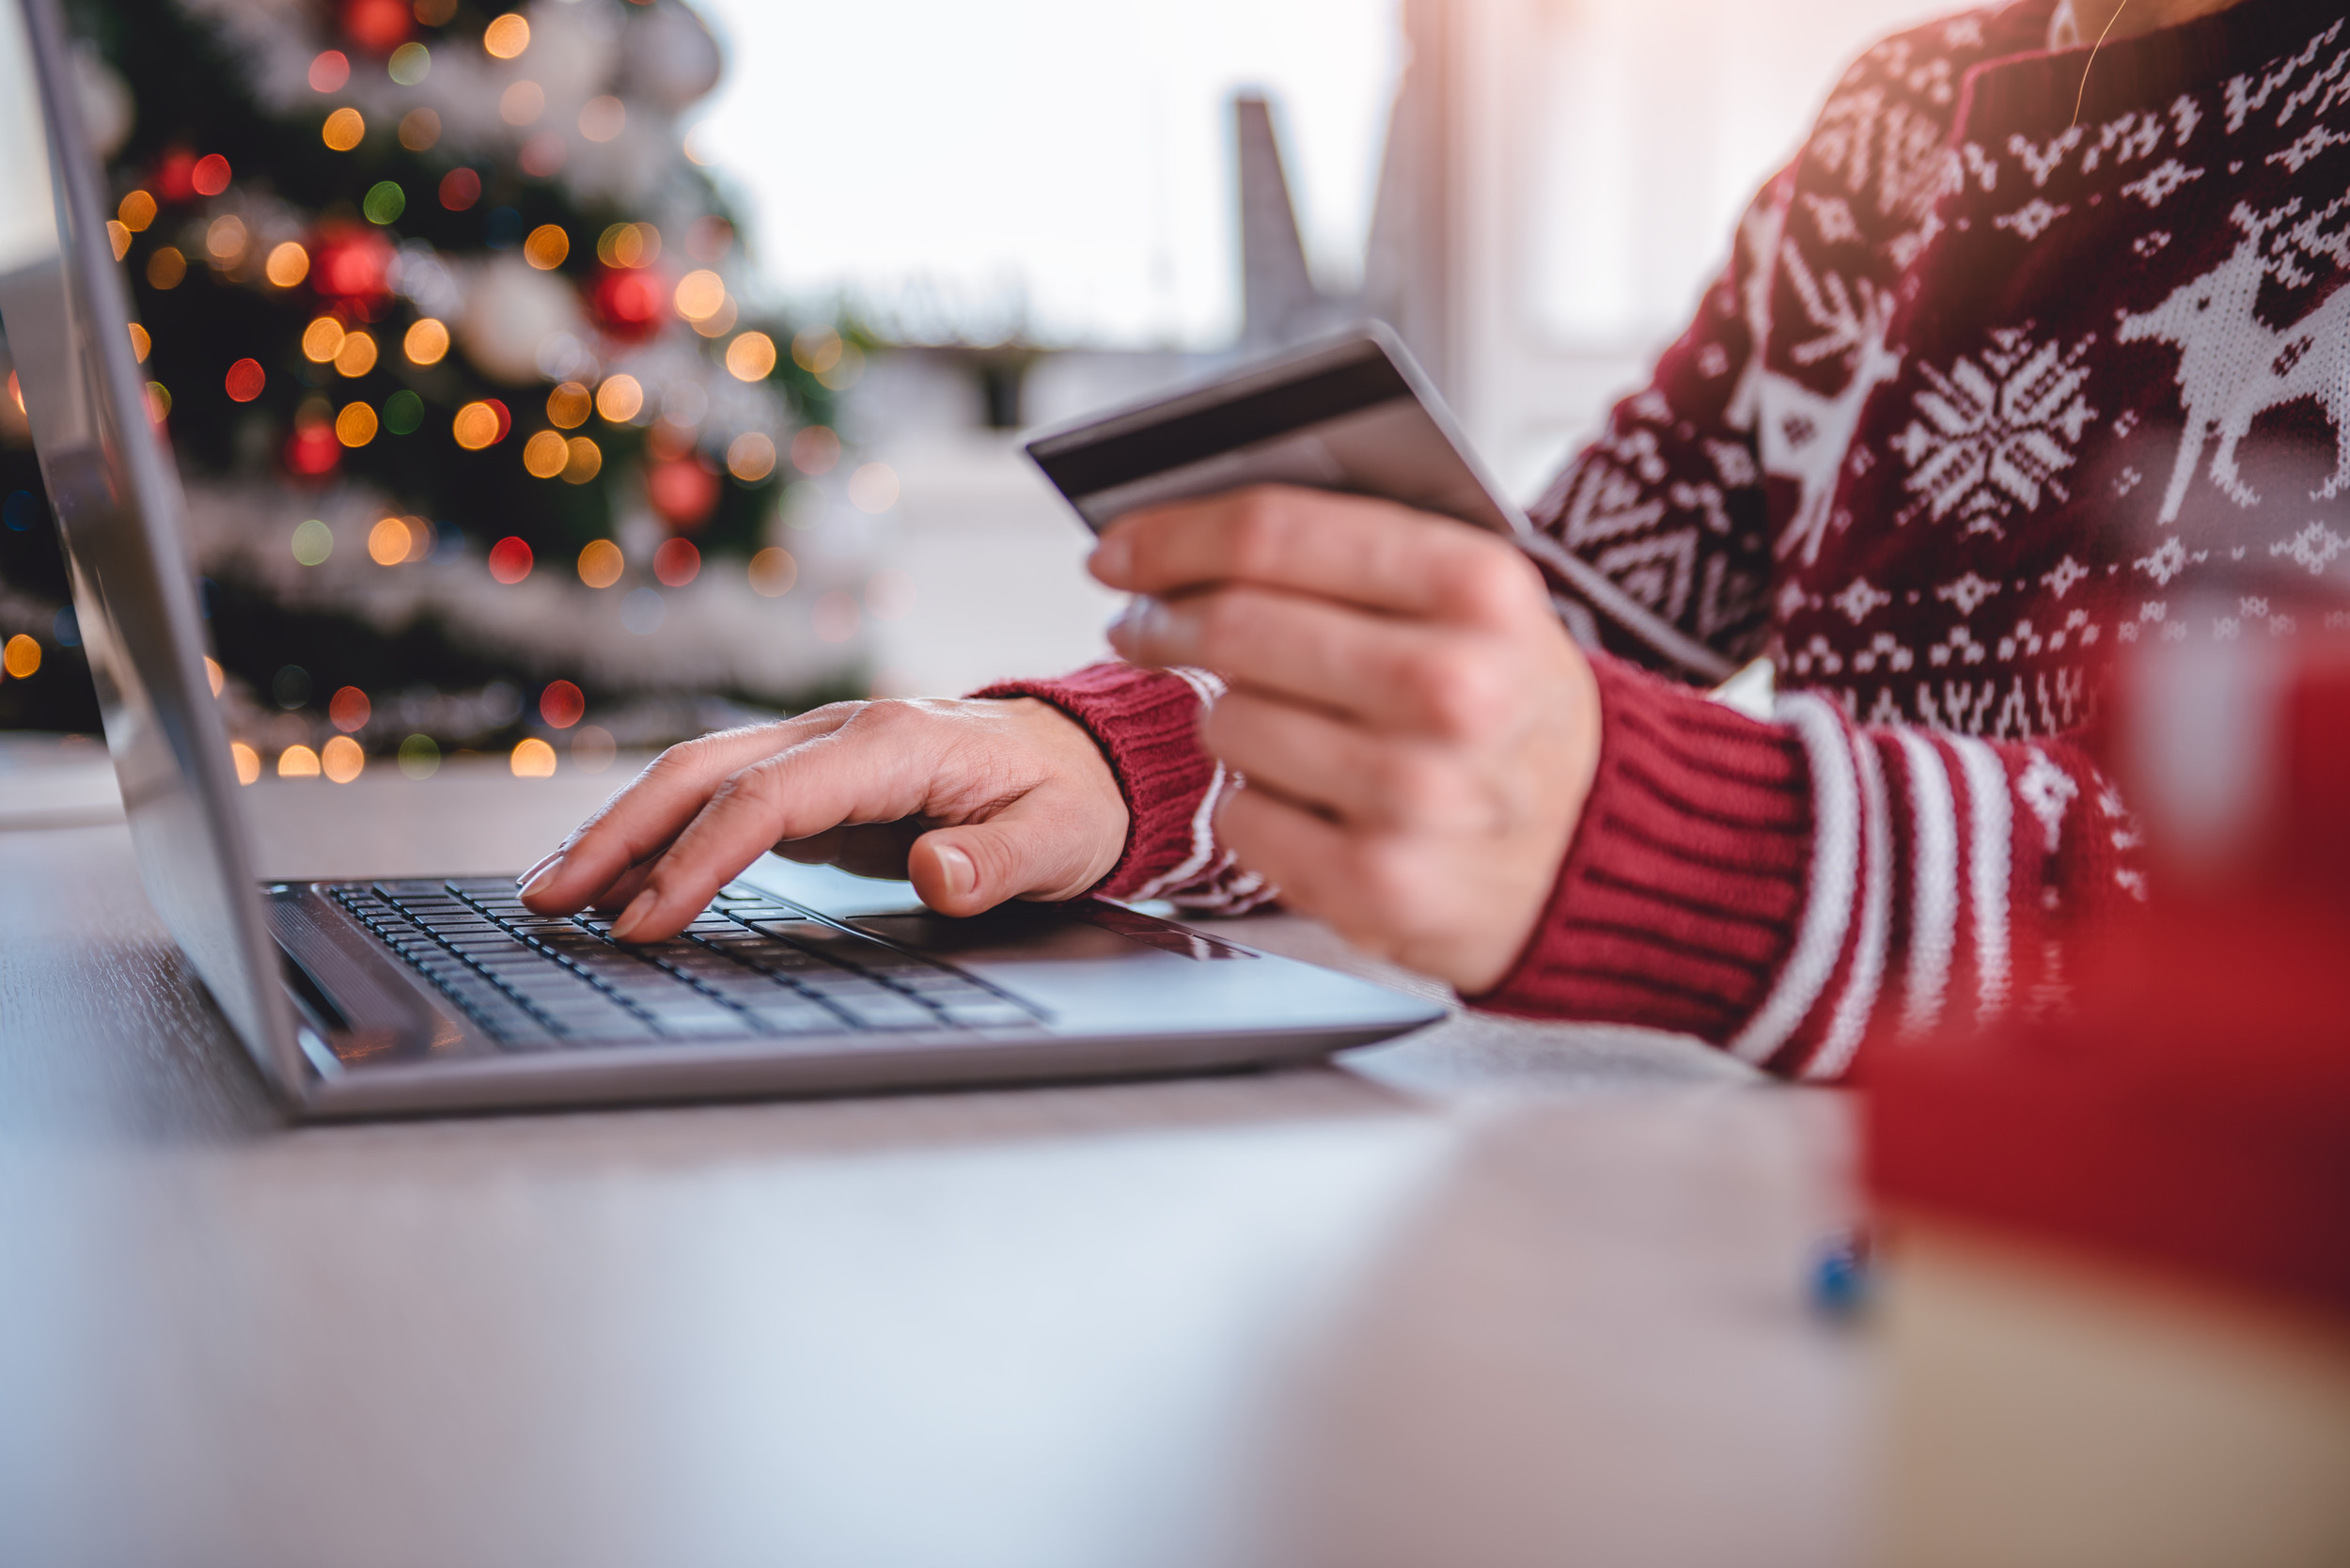 5 simple steps to prepare your holiday budget